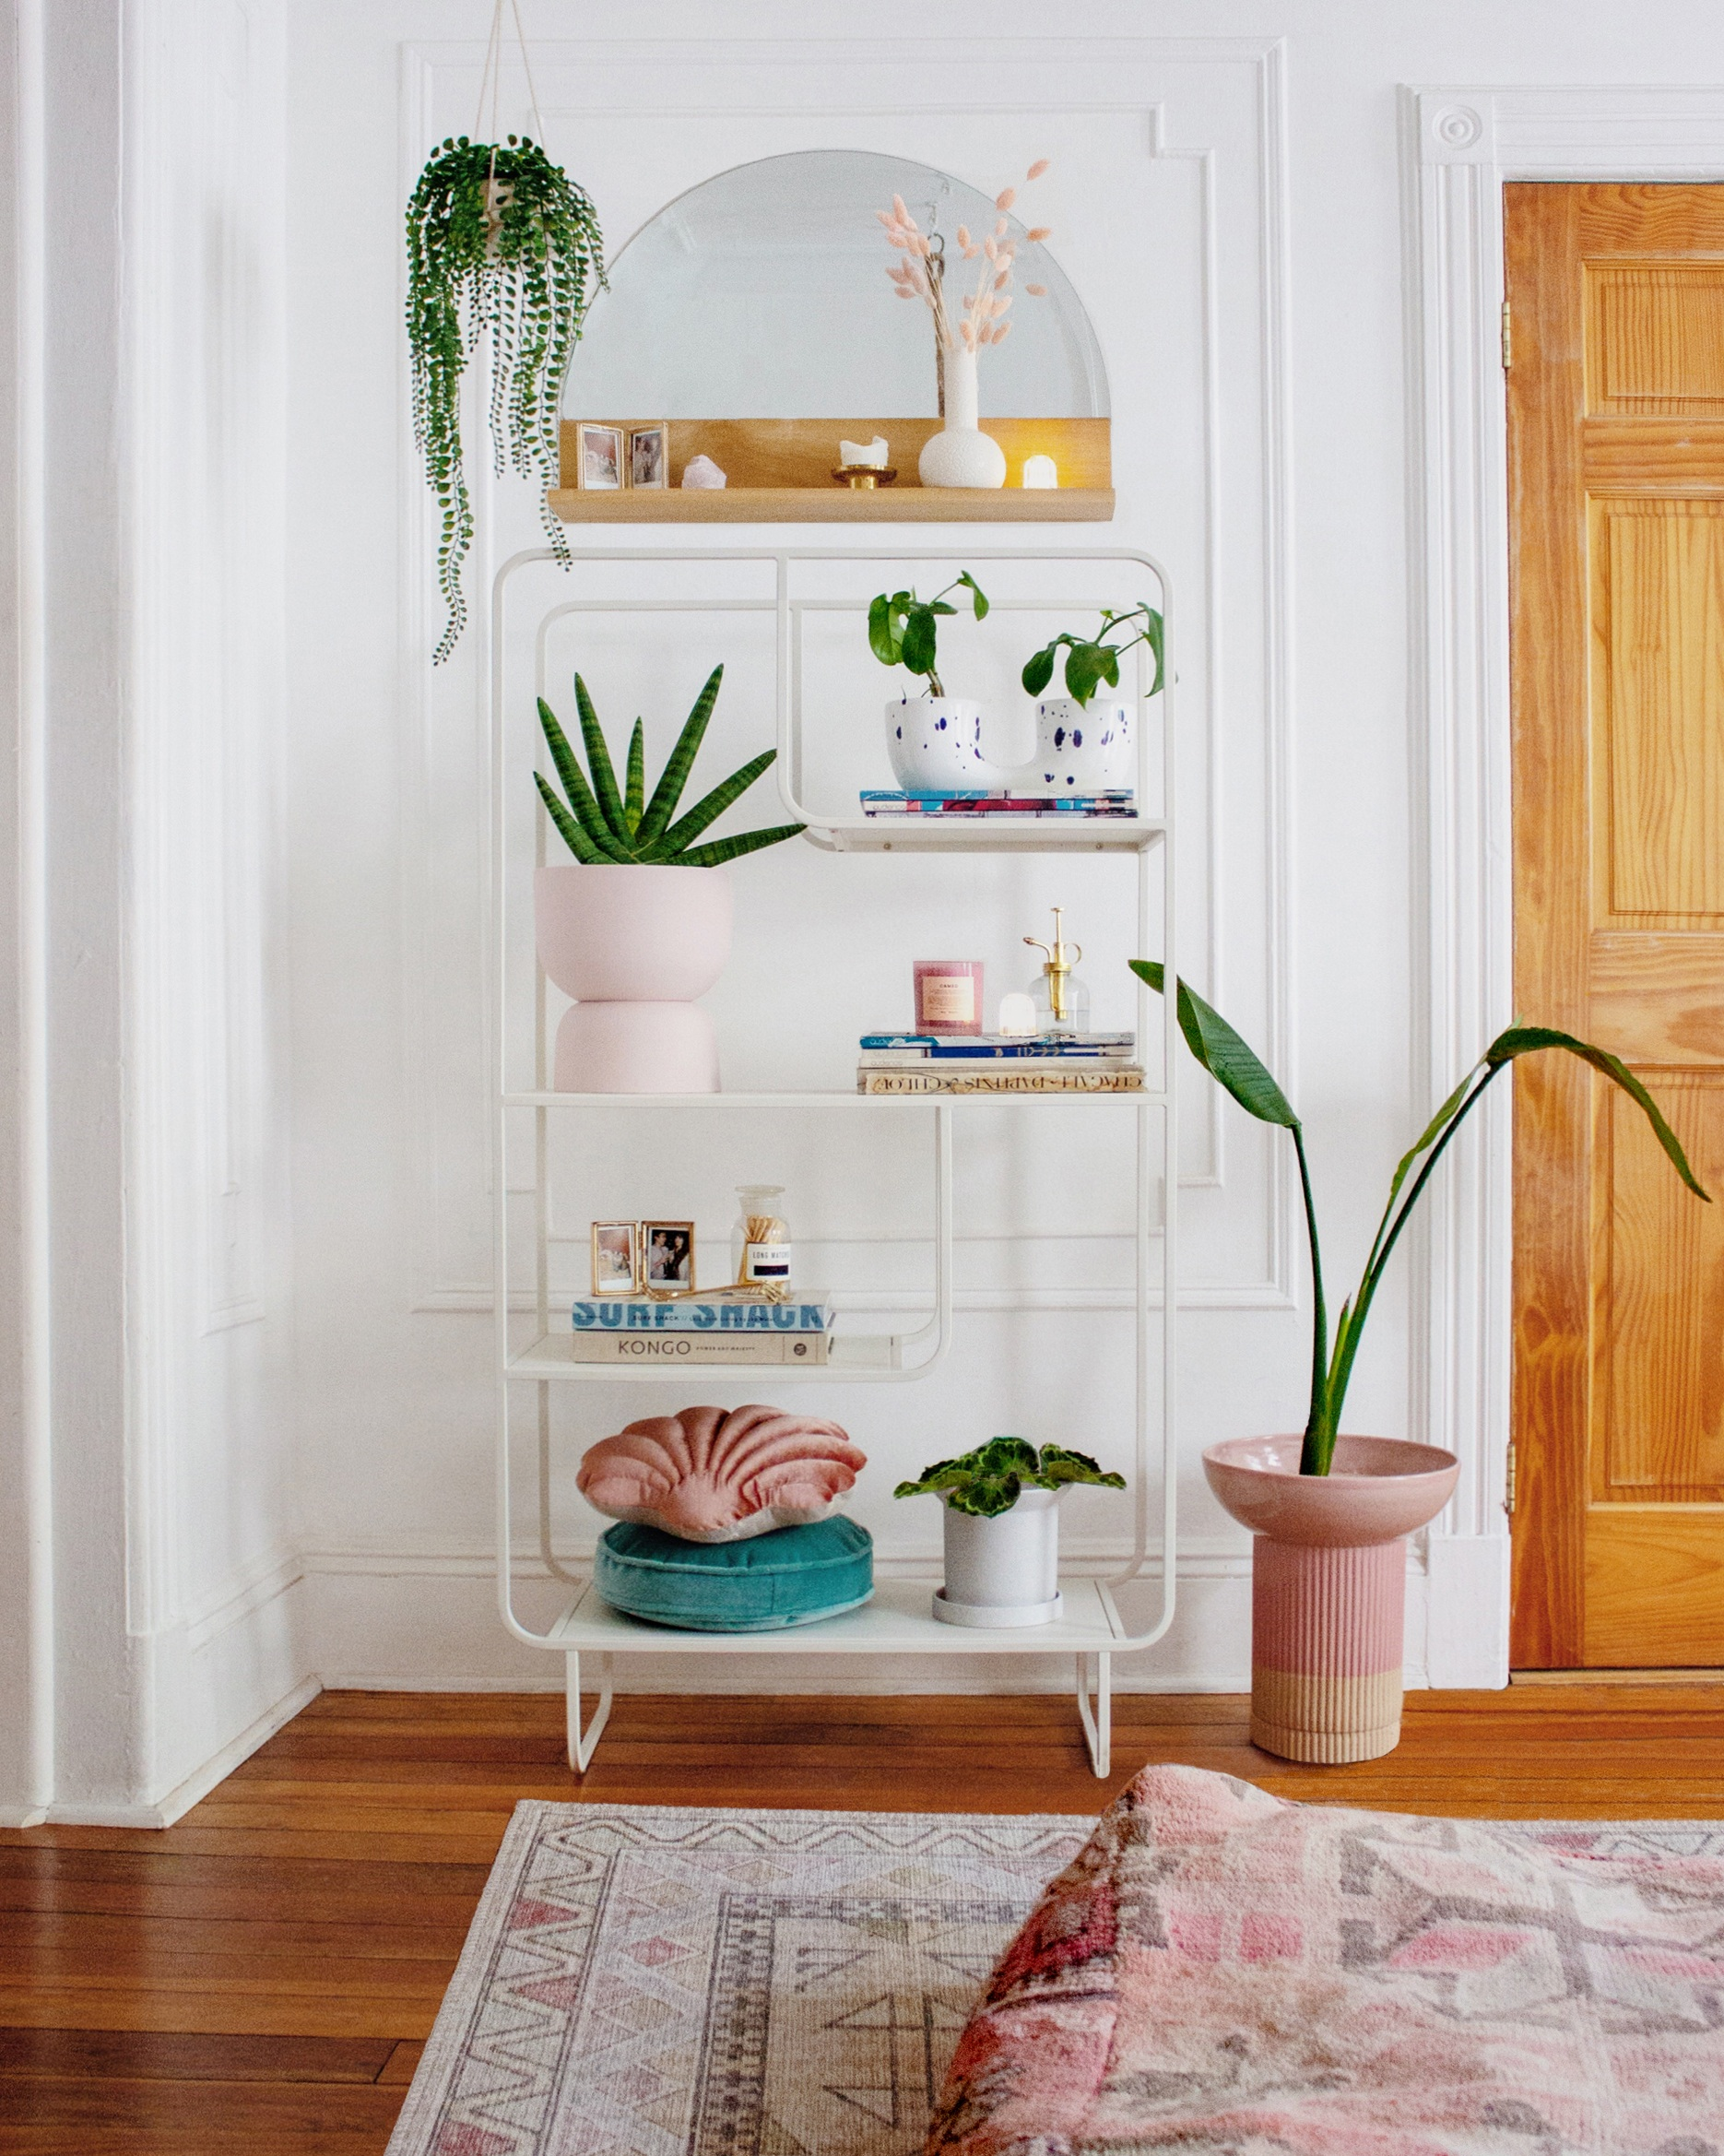 A beautifully plant-filled shelf styled by Mallory from @reserve_home featuring our Connected Plant Pot in Blue Crystal, Raw Earth Plant Pot in Rock Salt Pink, and Sandstone Plant Pot in White (Small).